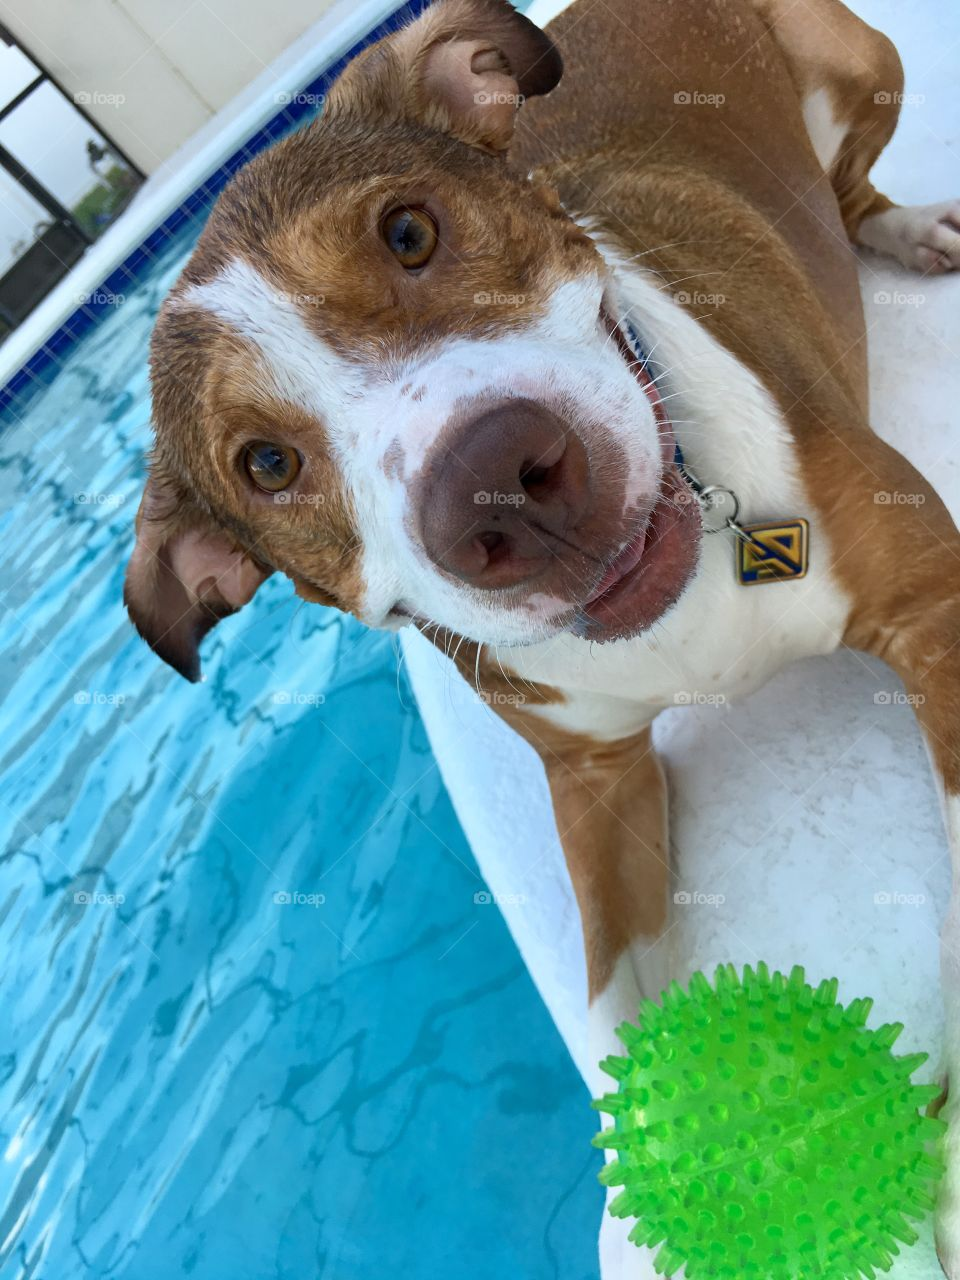 Very happy rescue dog playing ball in the pool in Florida